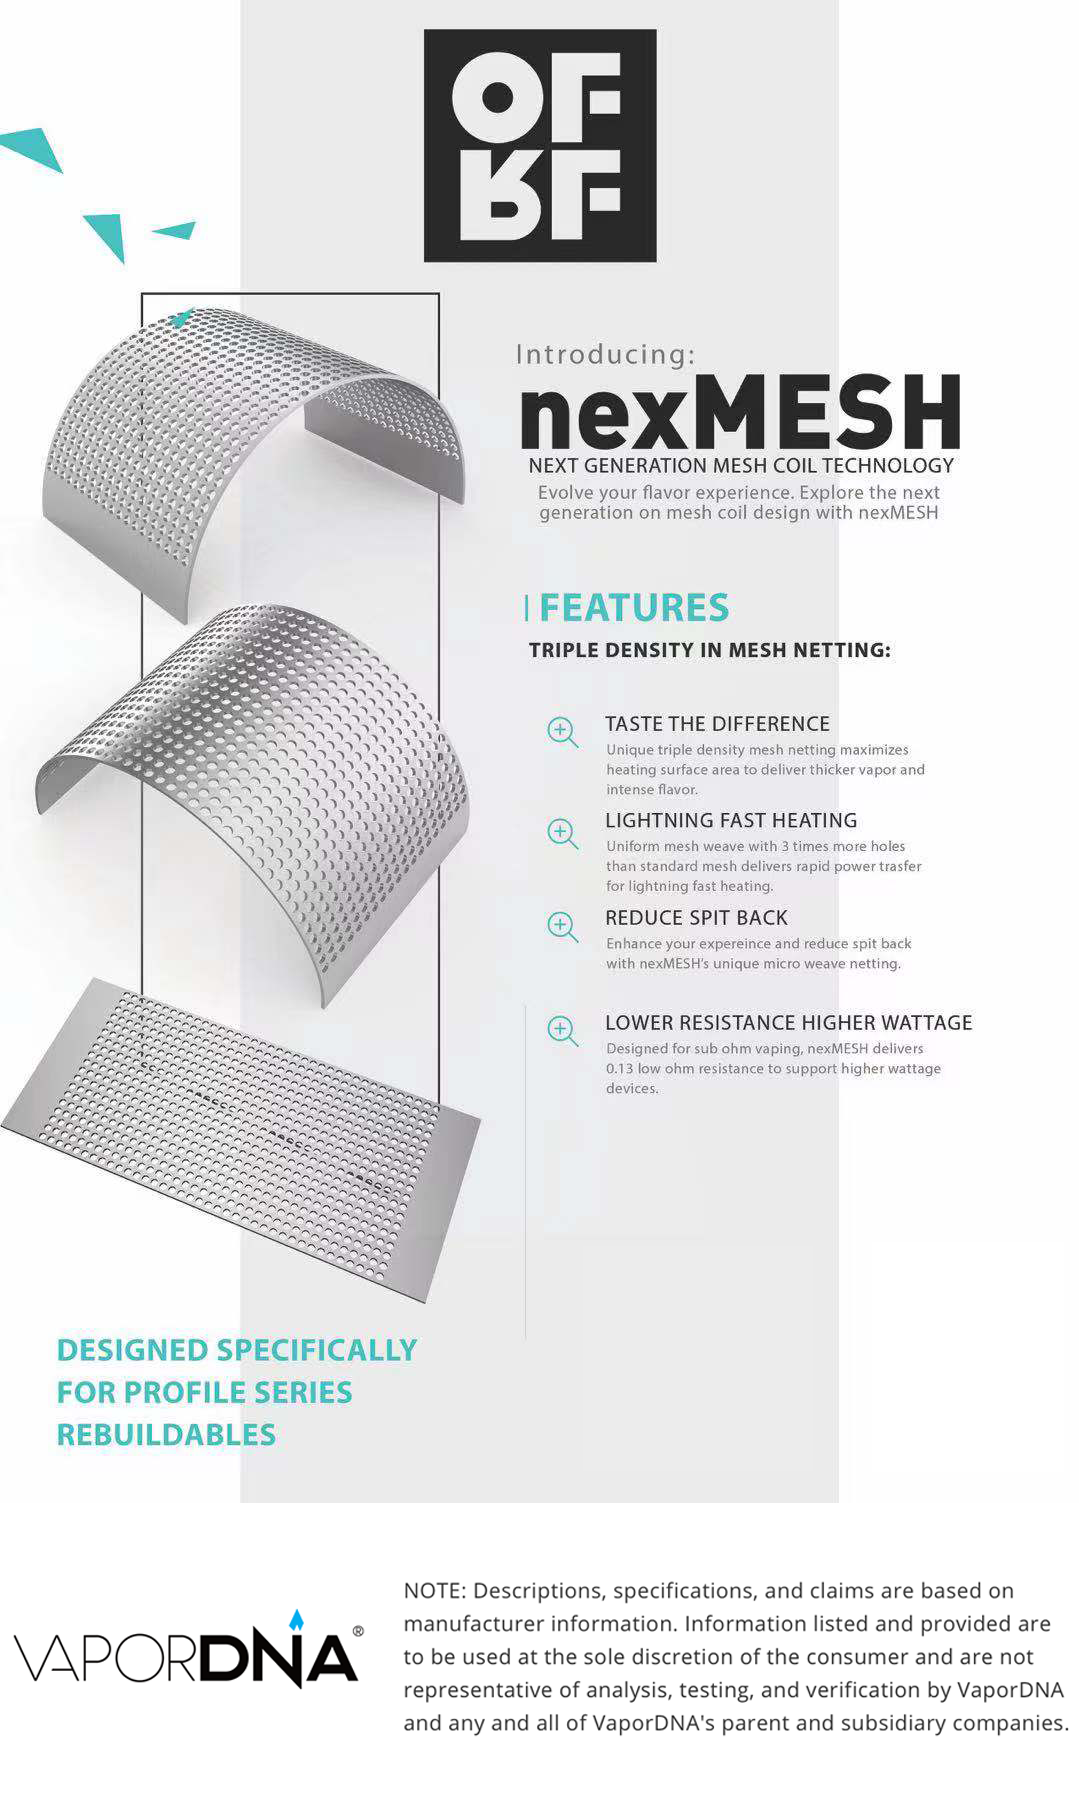 ofrf nexmesh infographic